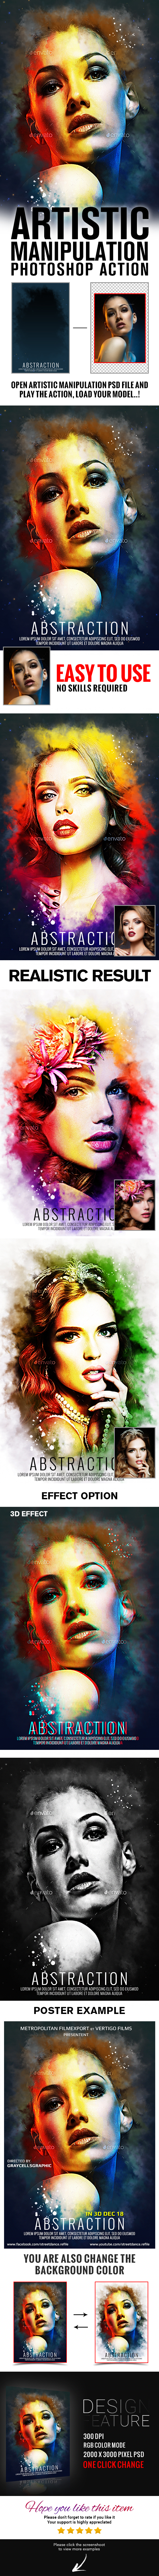 Artistic Manipulation Actions V1 - Photo Effects Actions